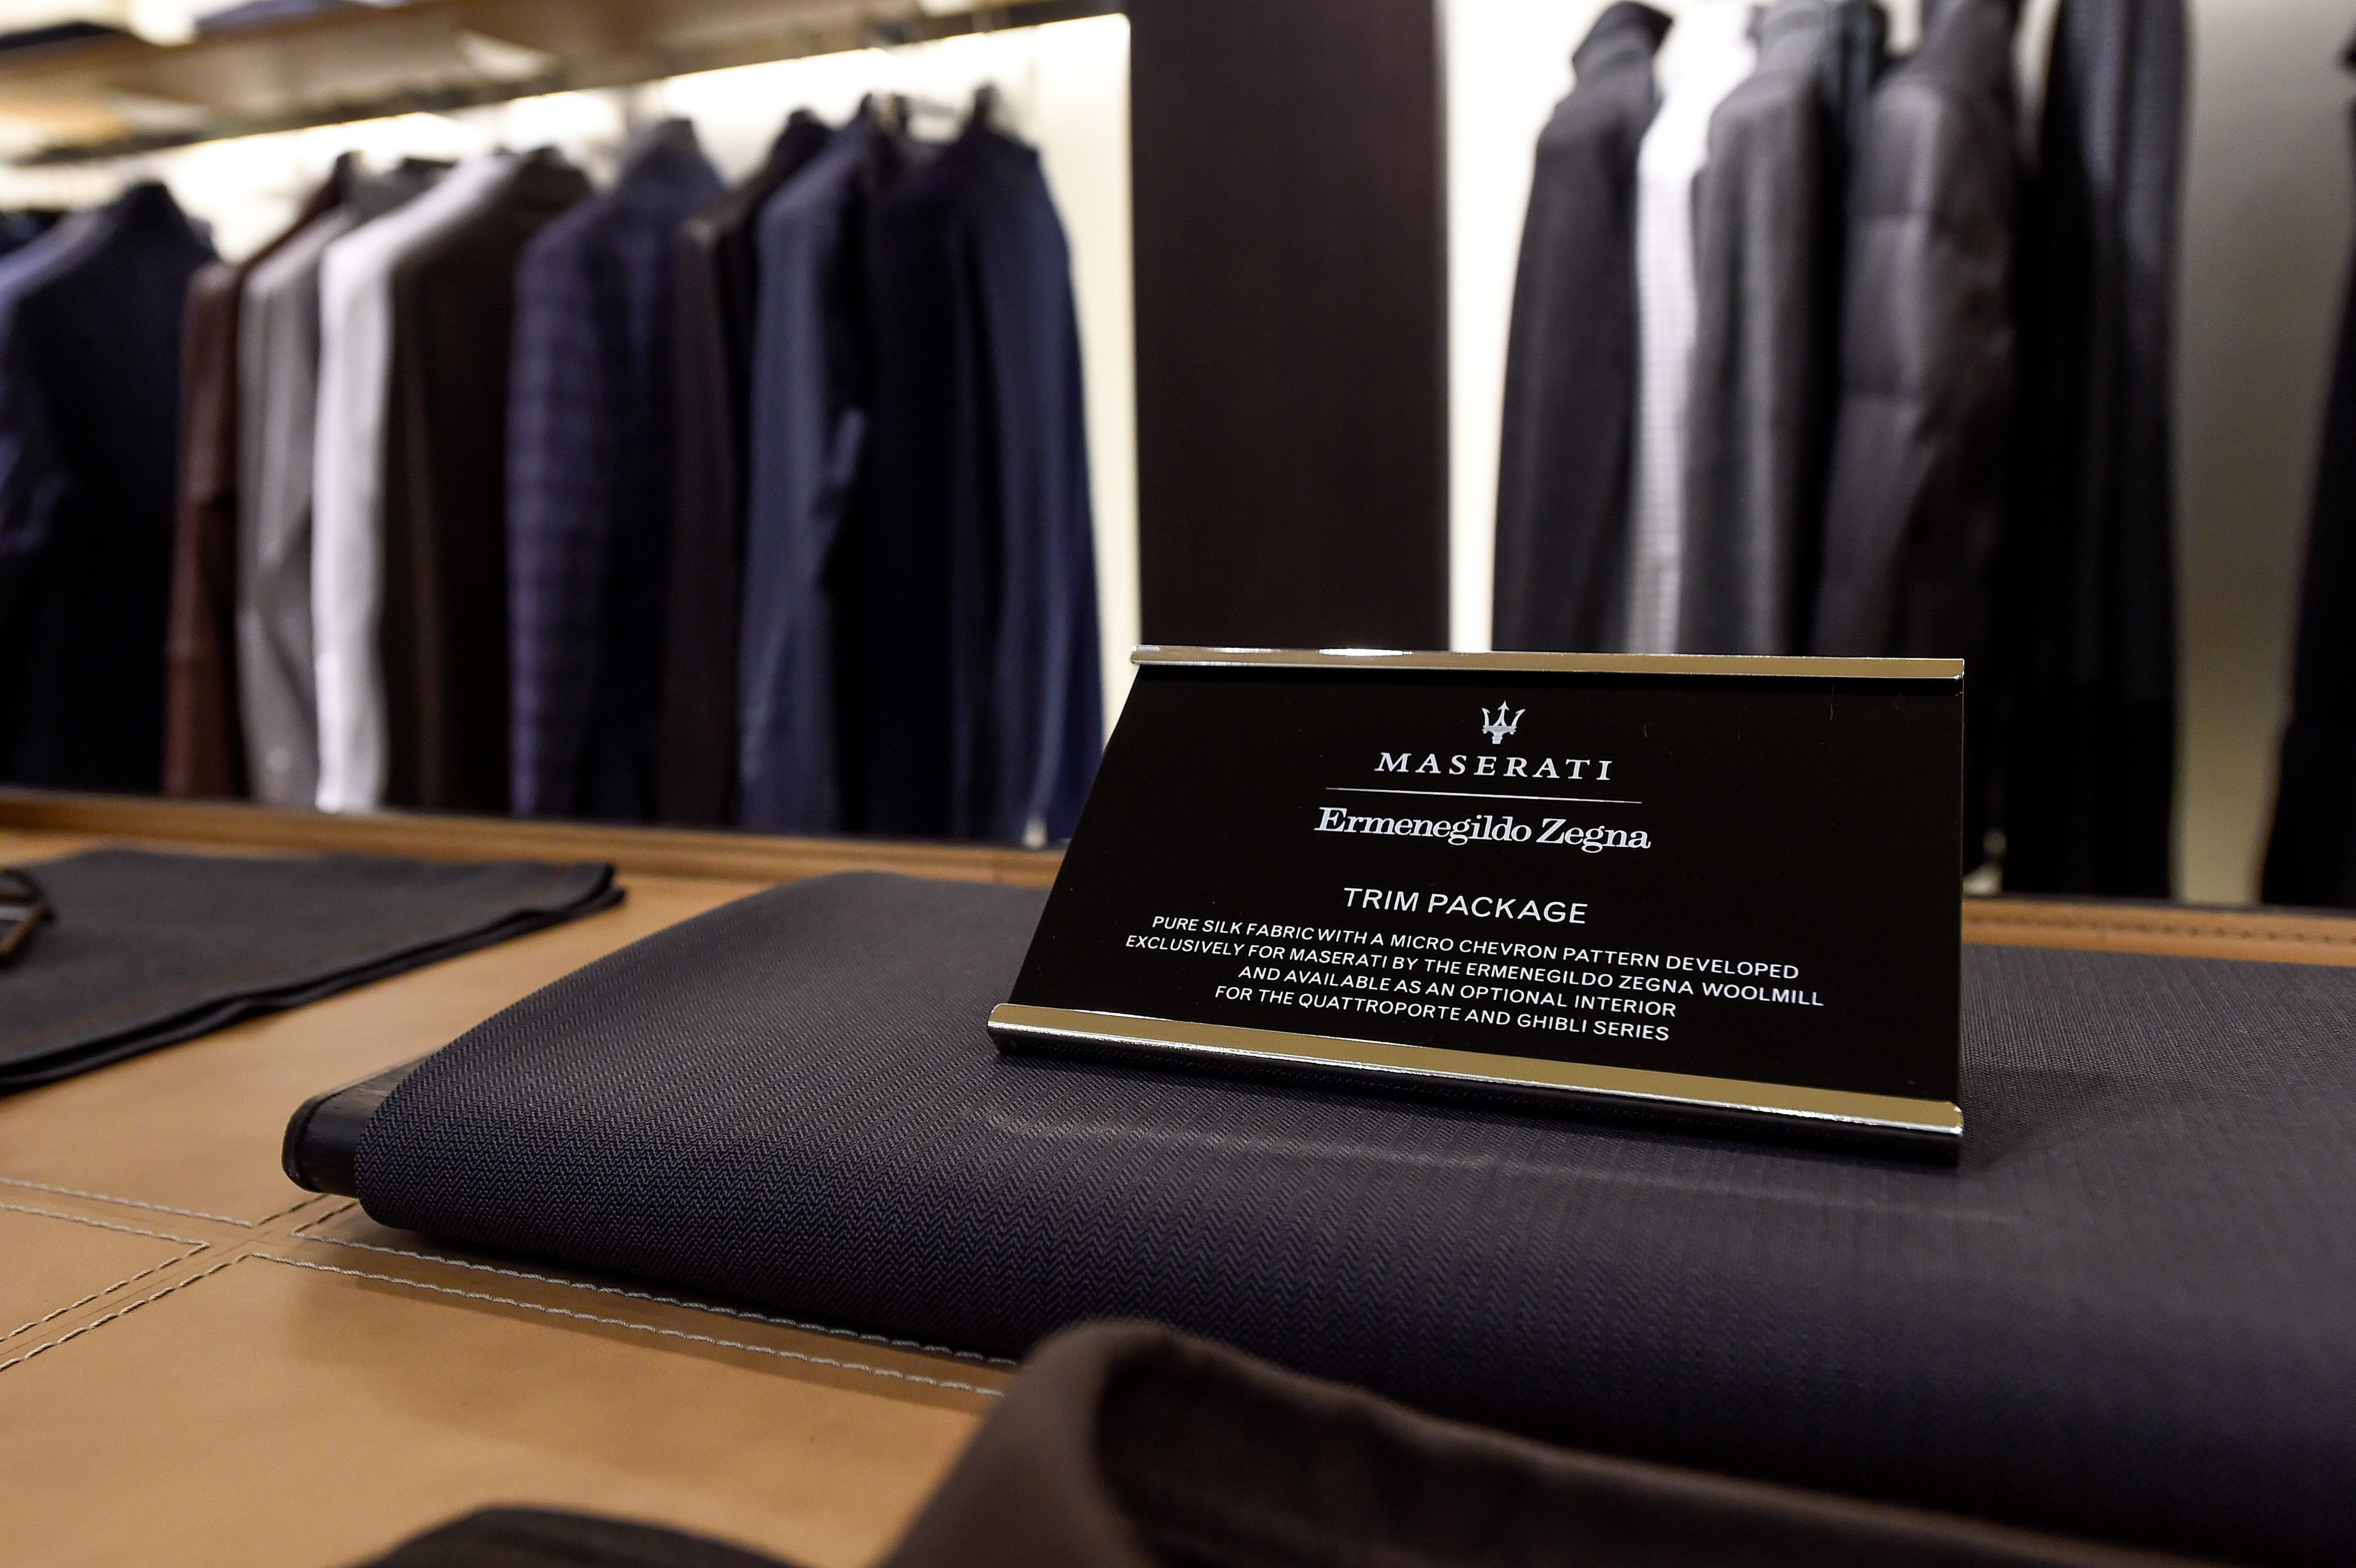 Heritage Craftsmanship And Elegance It S The Ermenegildo Zegna Maserati Capsule Collection Showcased Yesterday At The Zegna Boutique In Frankfurt Take A Look